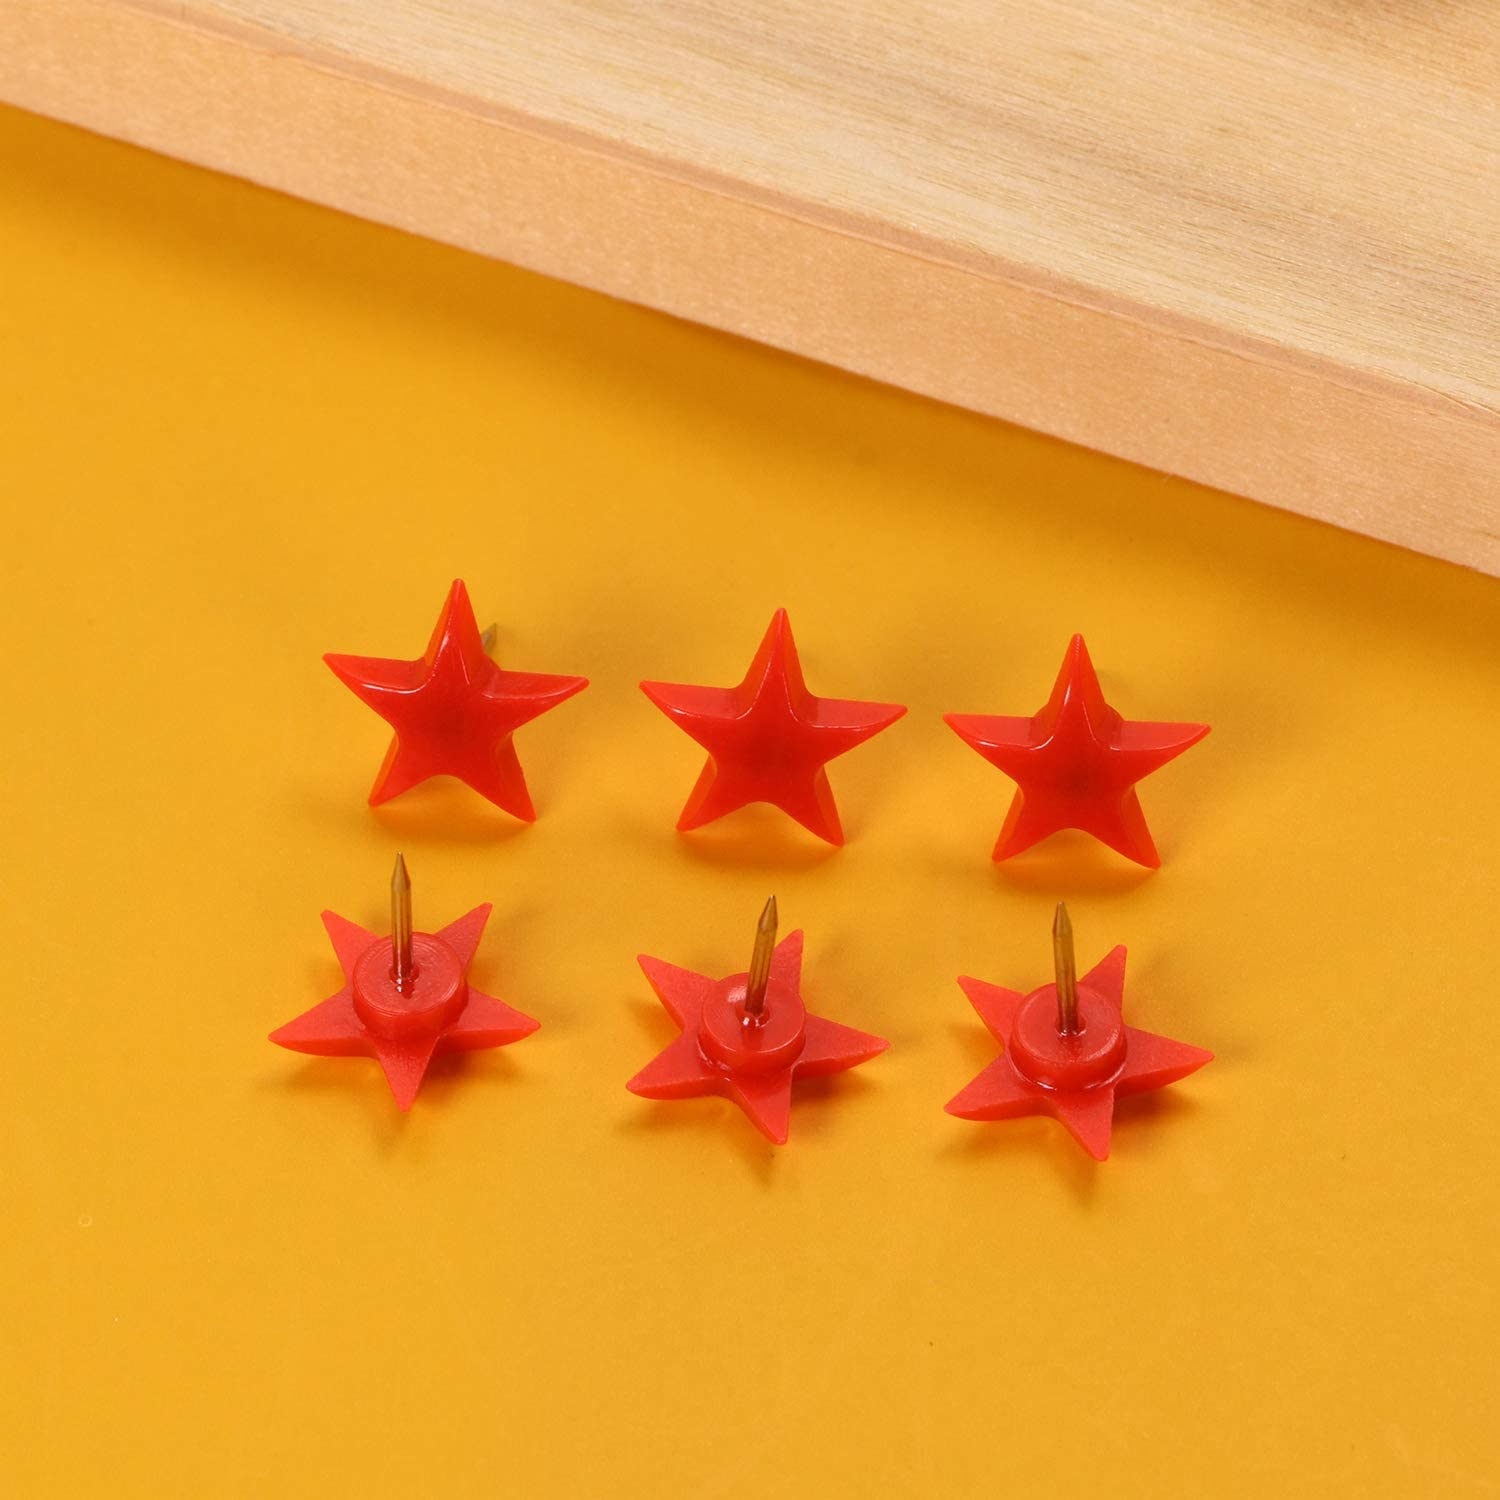 Red Plastic Star Head Steel Point ONLYKXY 100 Pieces Push Pins Tacks